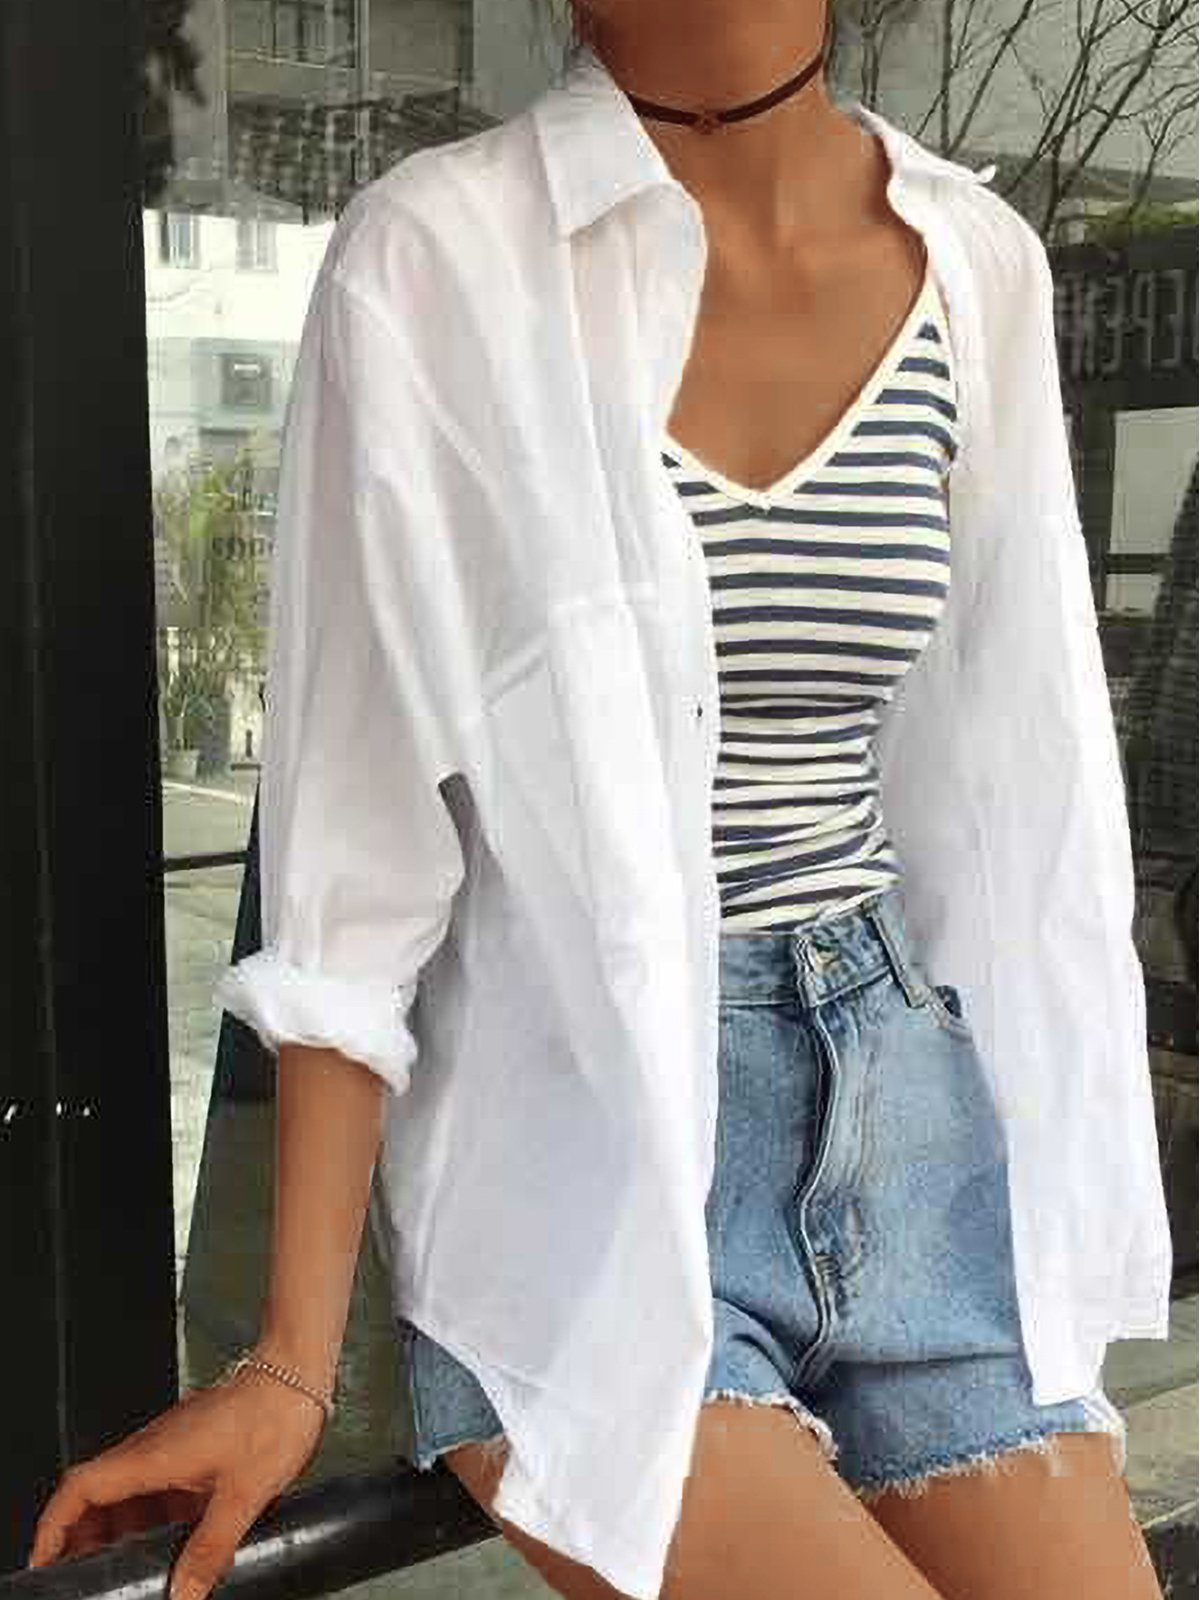 Plus Size Women Long Sleeve Loose Solid Cotton Sunscreen Jacket Casual Shirt Cardigan